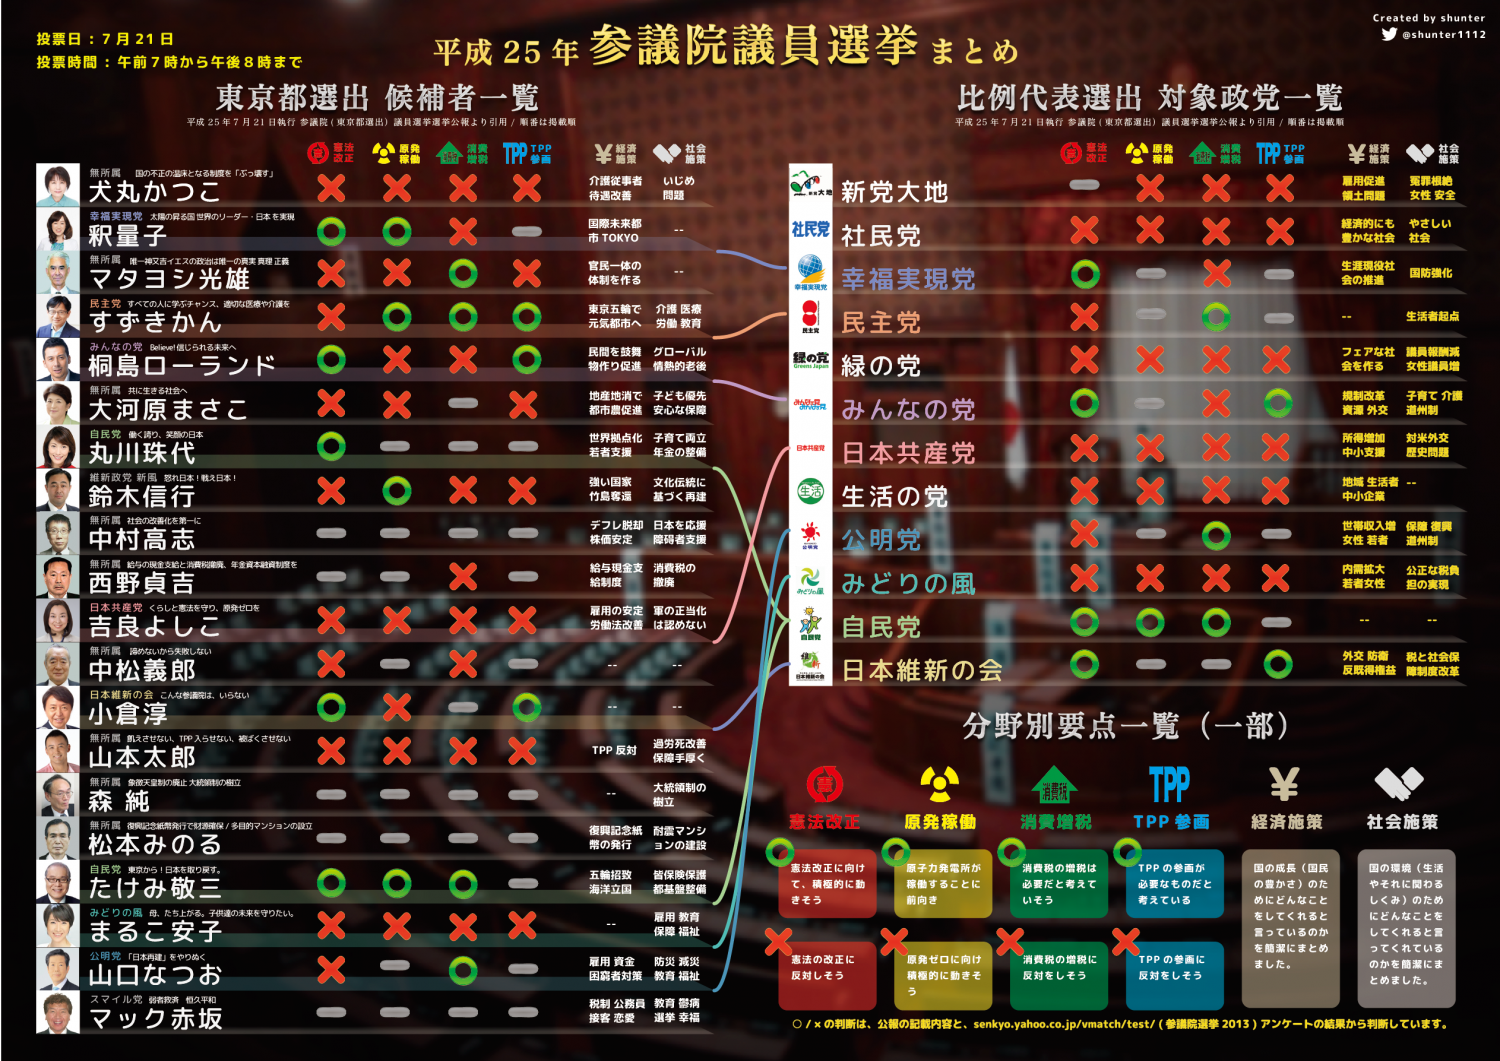 Japanese Upper House Election's Candidates Infographic